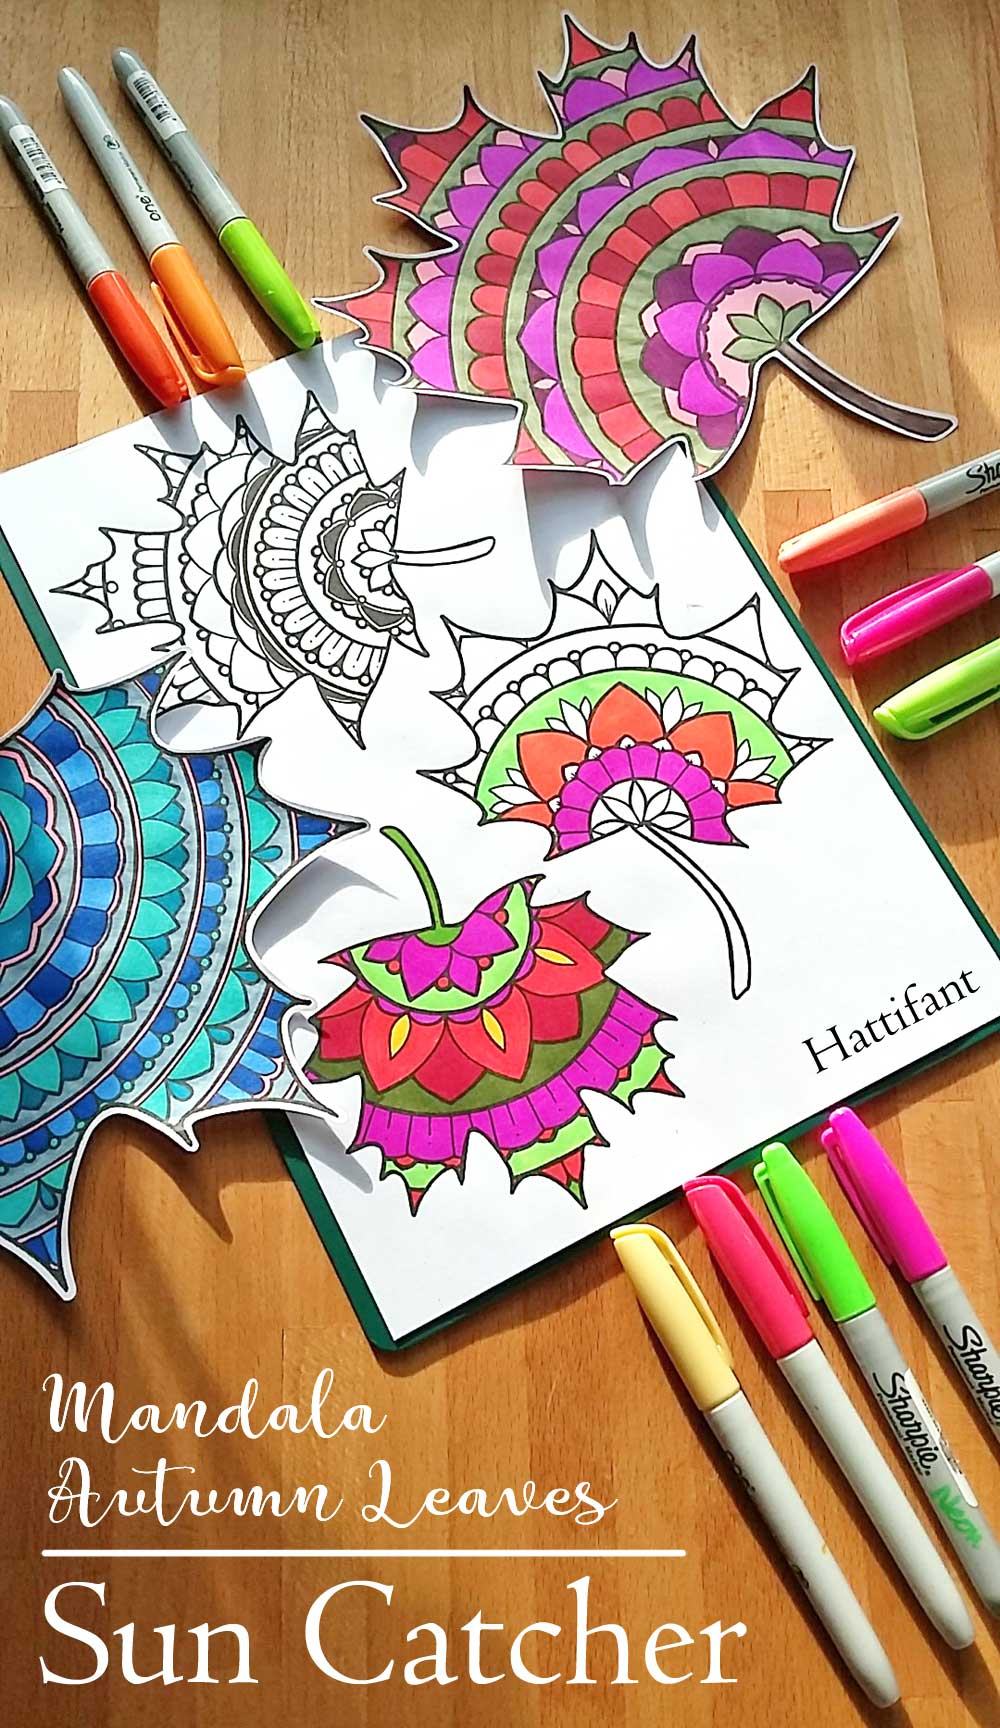 Hattifant's Mandala Autumn Leaves Sun Catcher Papercraft